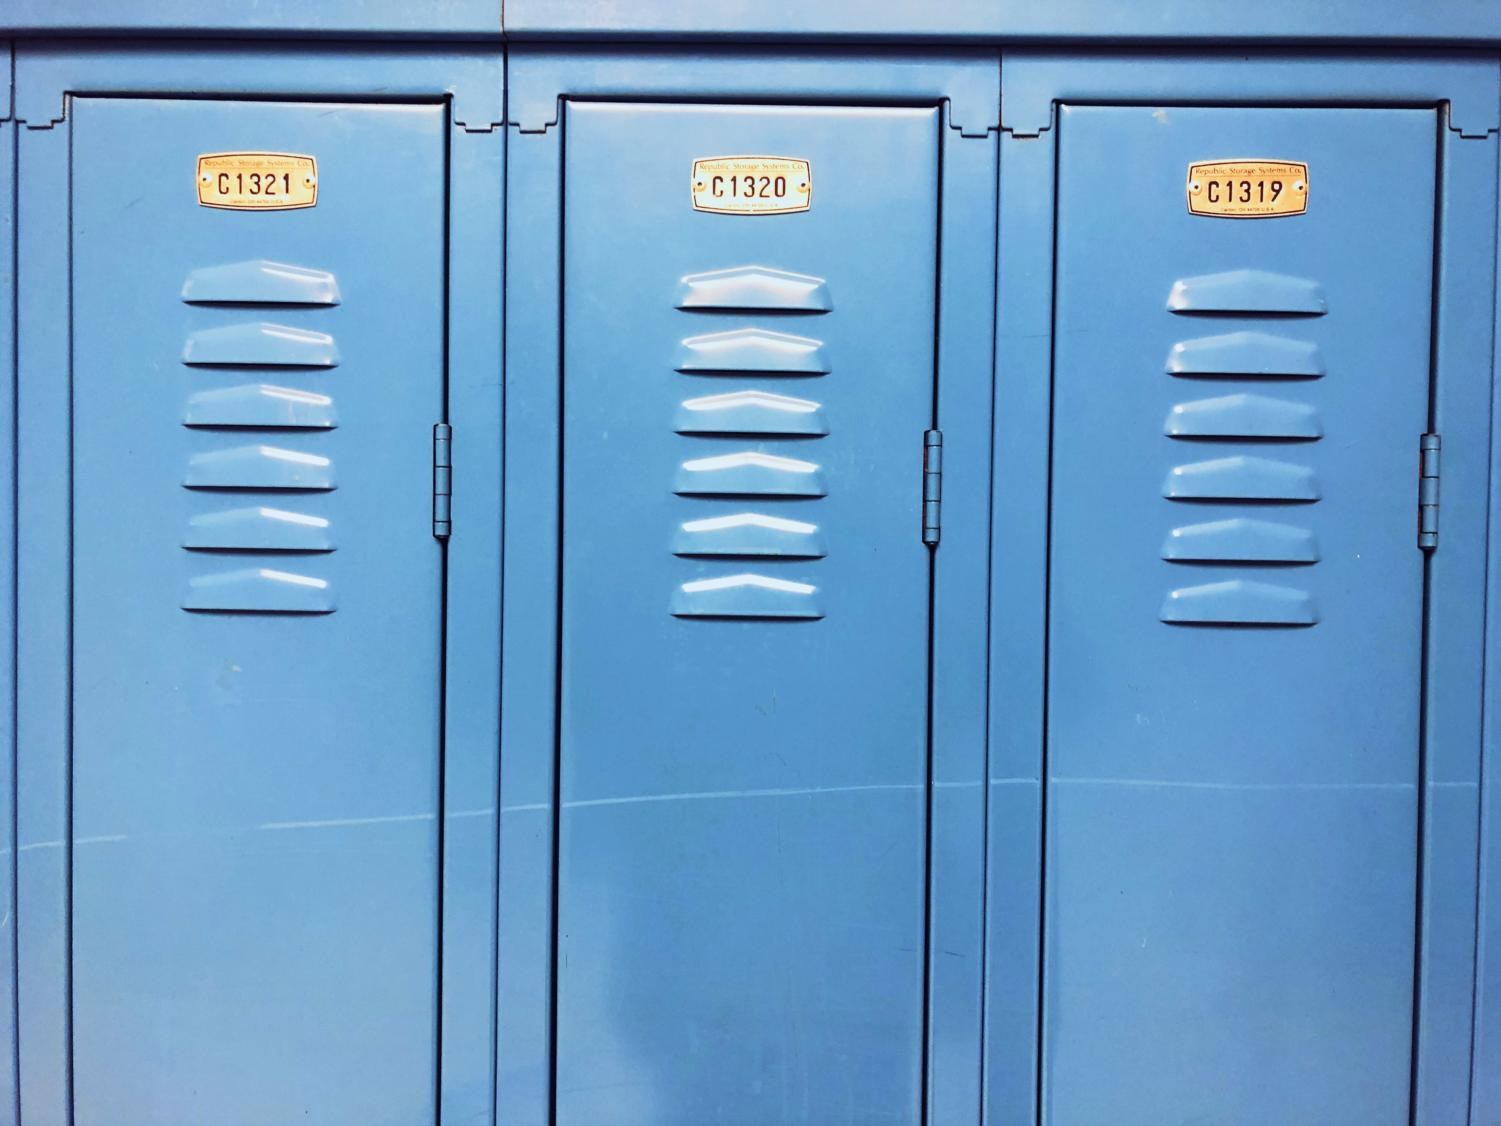 The lockers at DGS.